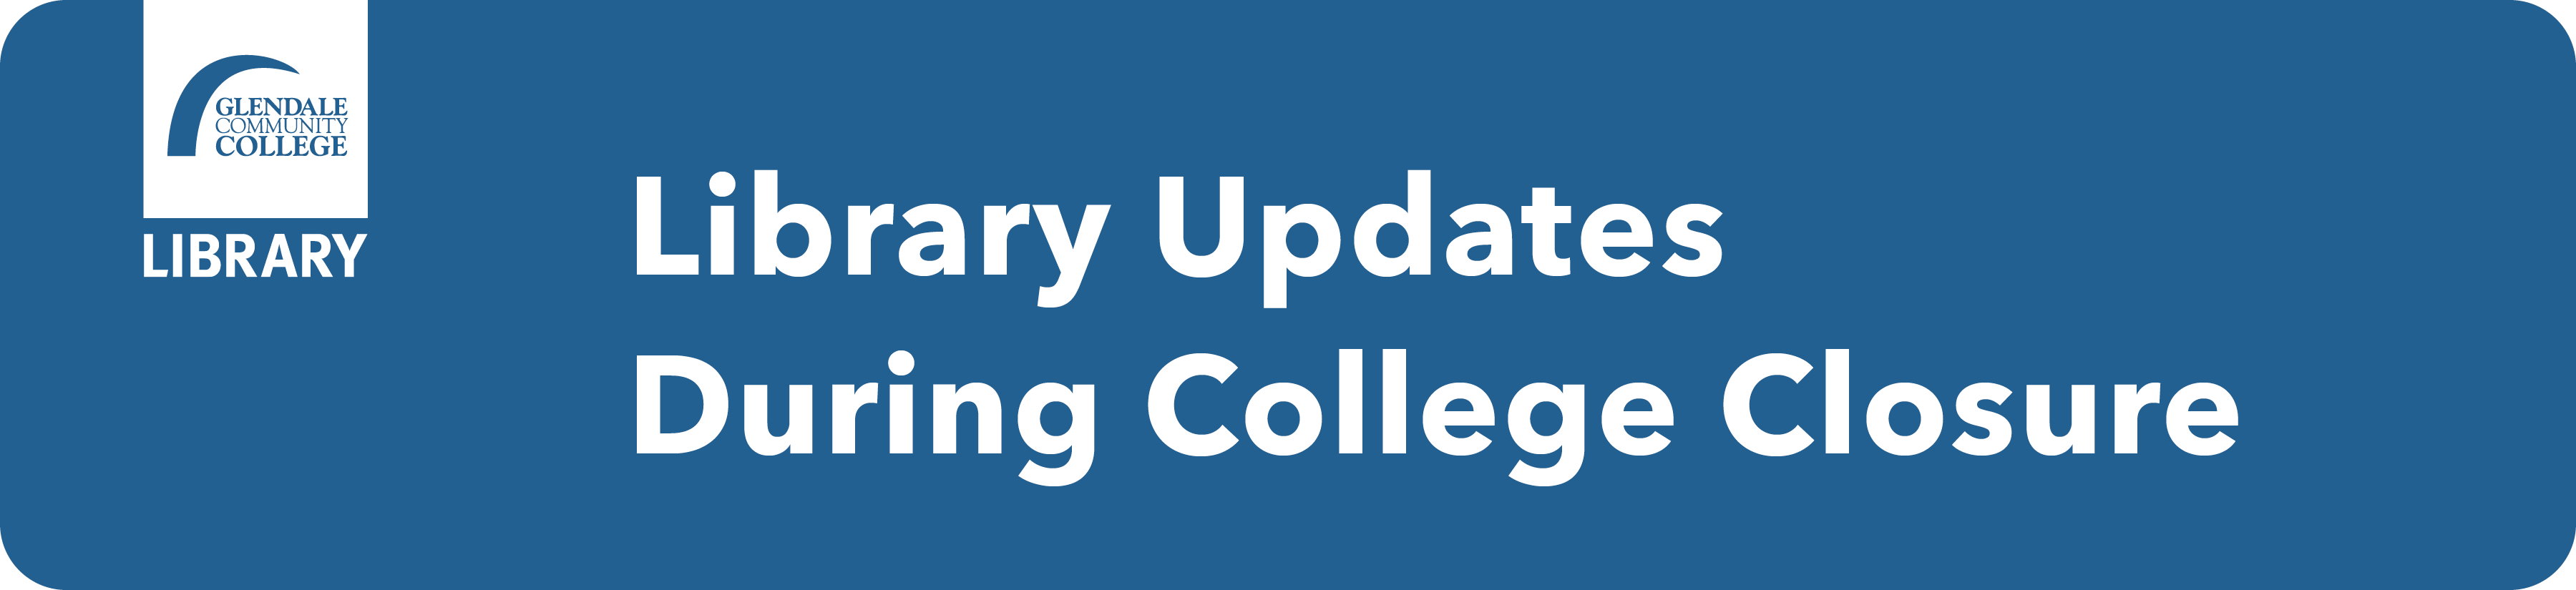 Library Updates During Campus Closure